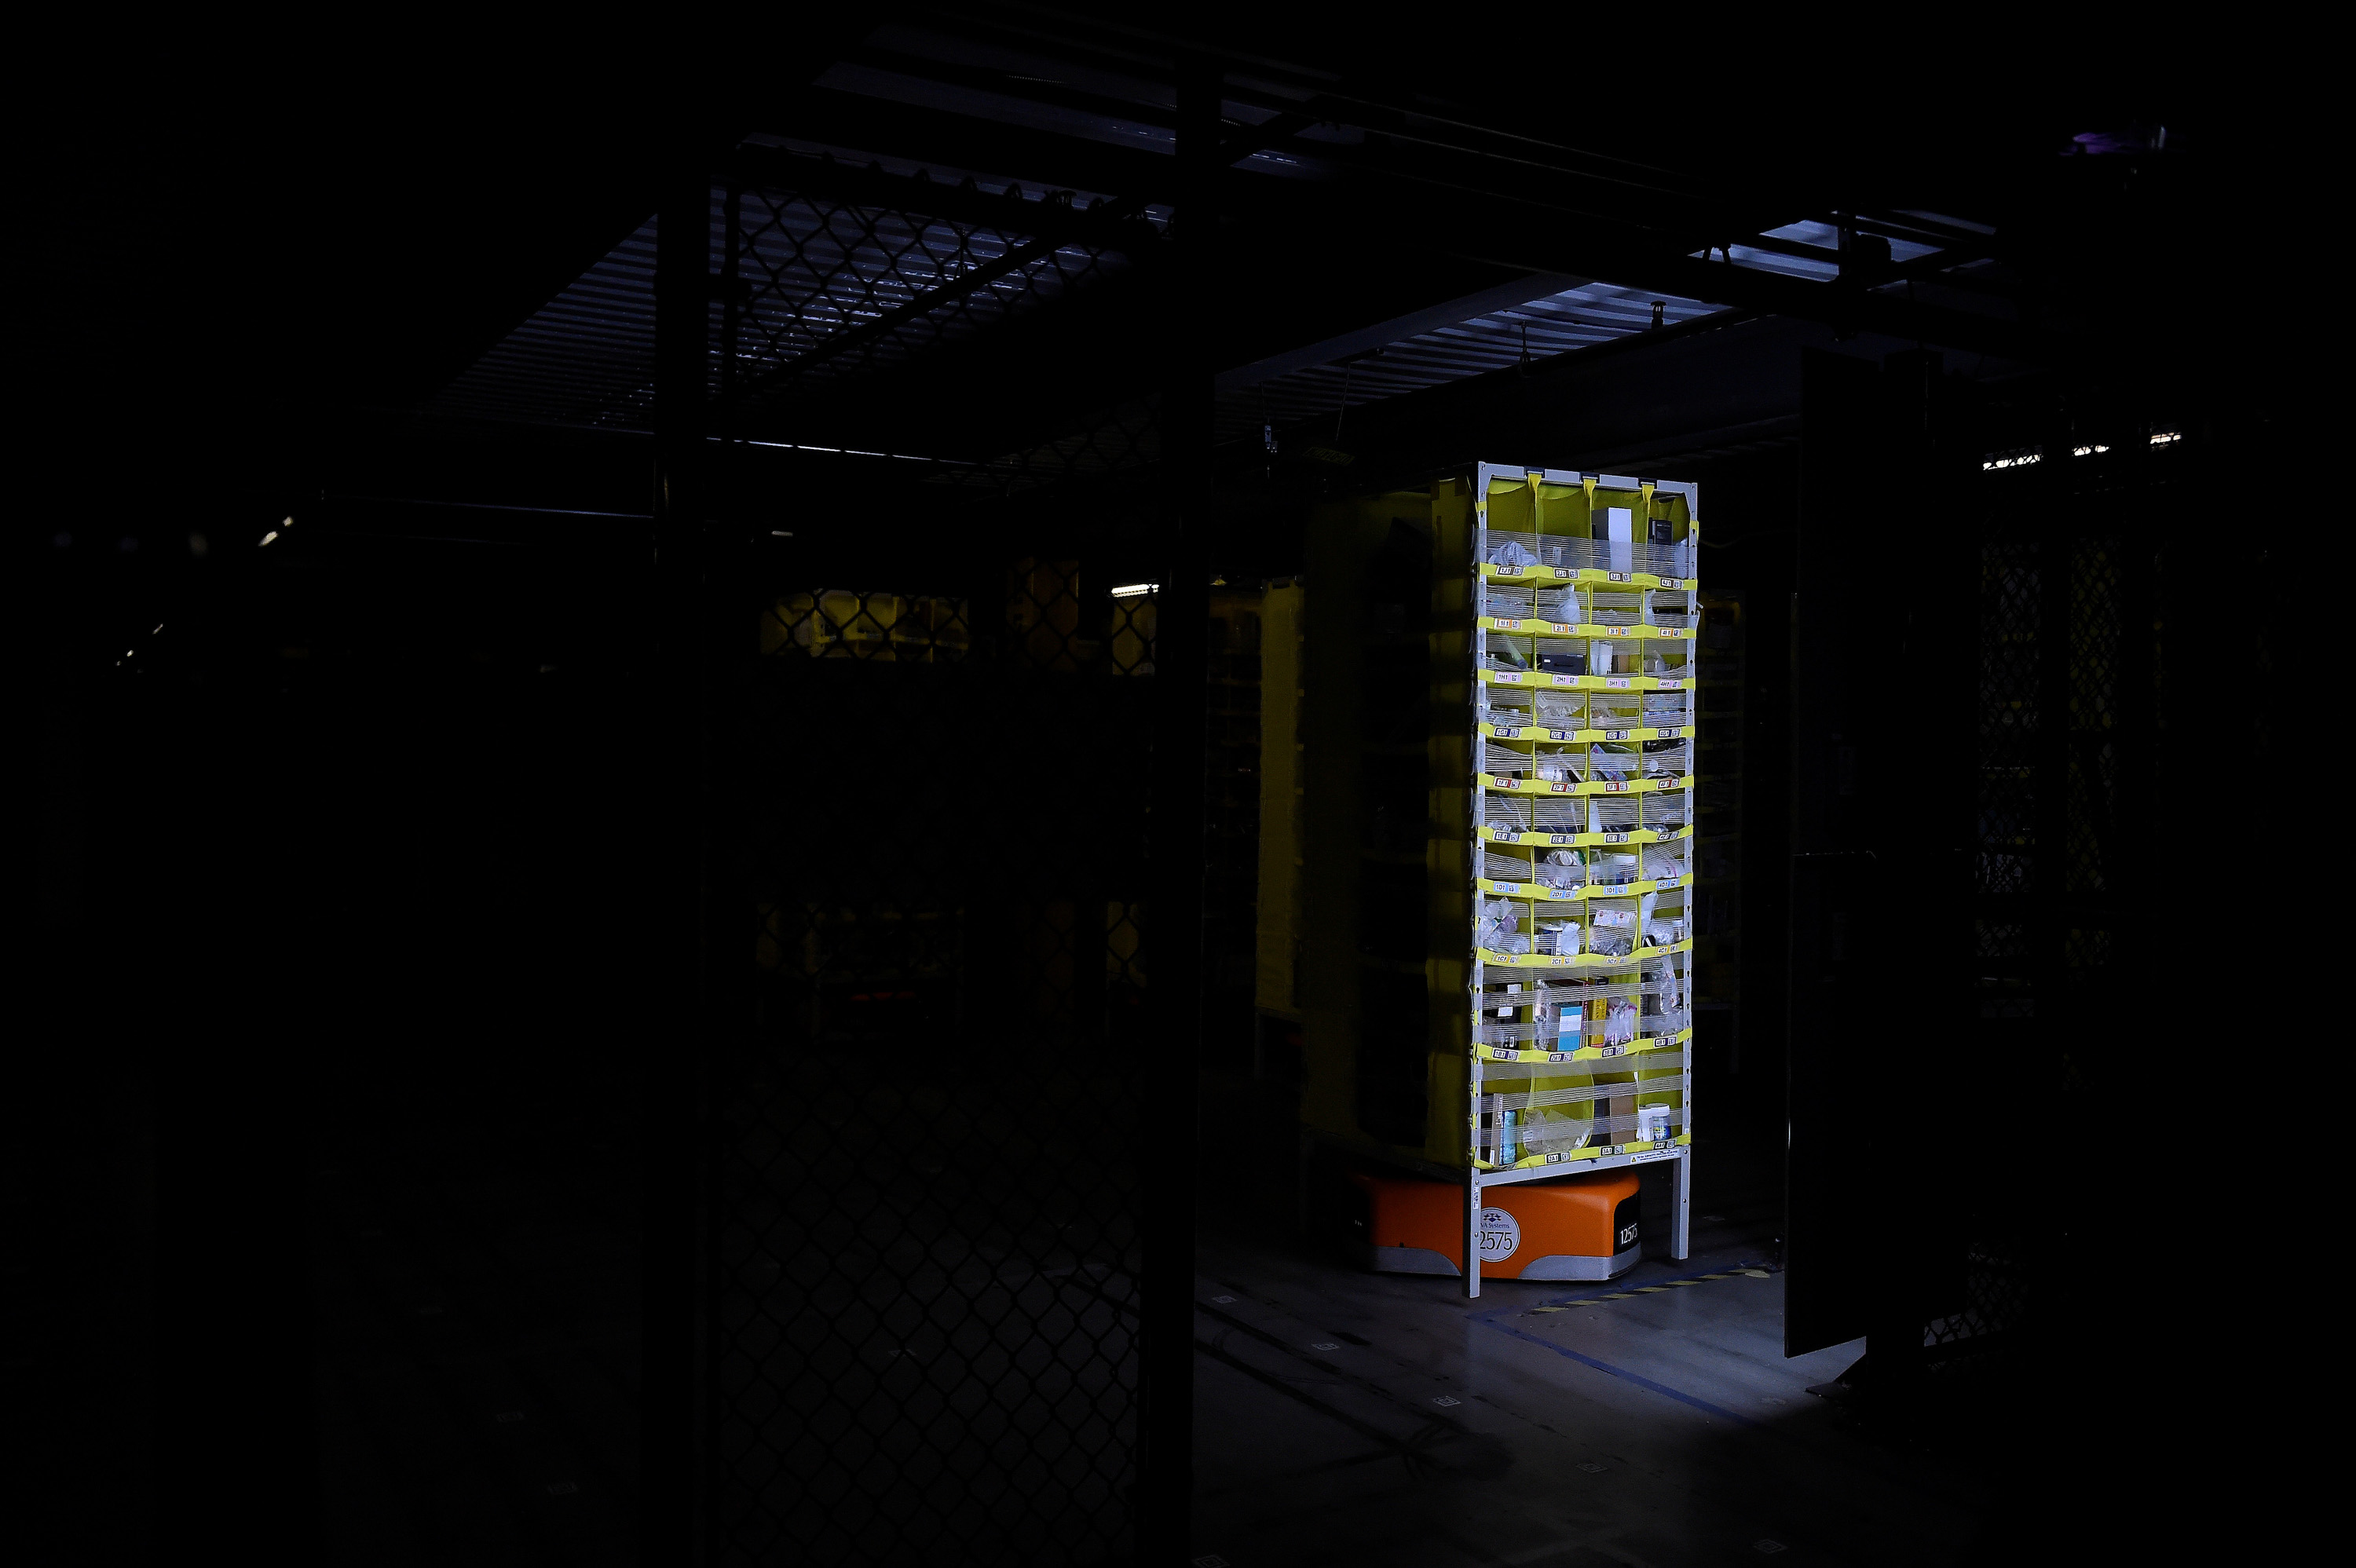 Amazon robotic shelves move to various sorting stations at the Amazon fulfillment center in Baltimore, Maryland, U.S., April 30, 2019. REUTERS/Clodagh Kilcoyne - RC1872CB8460